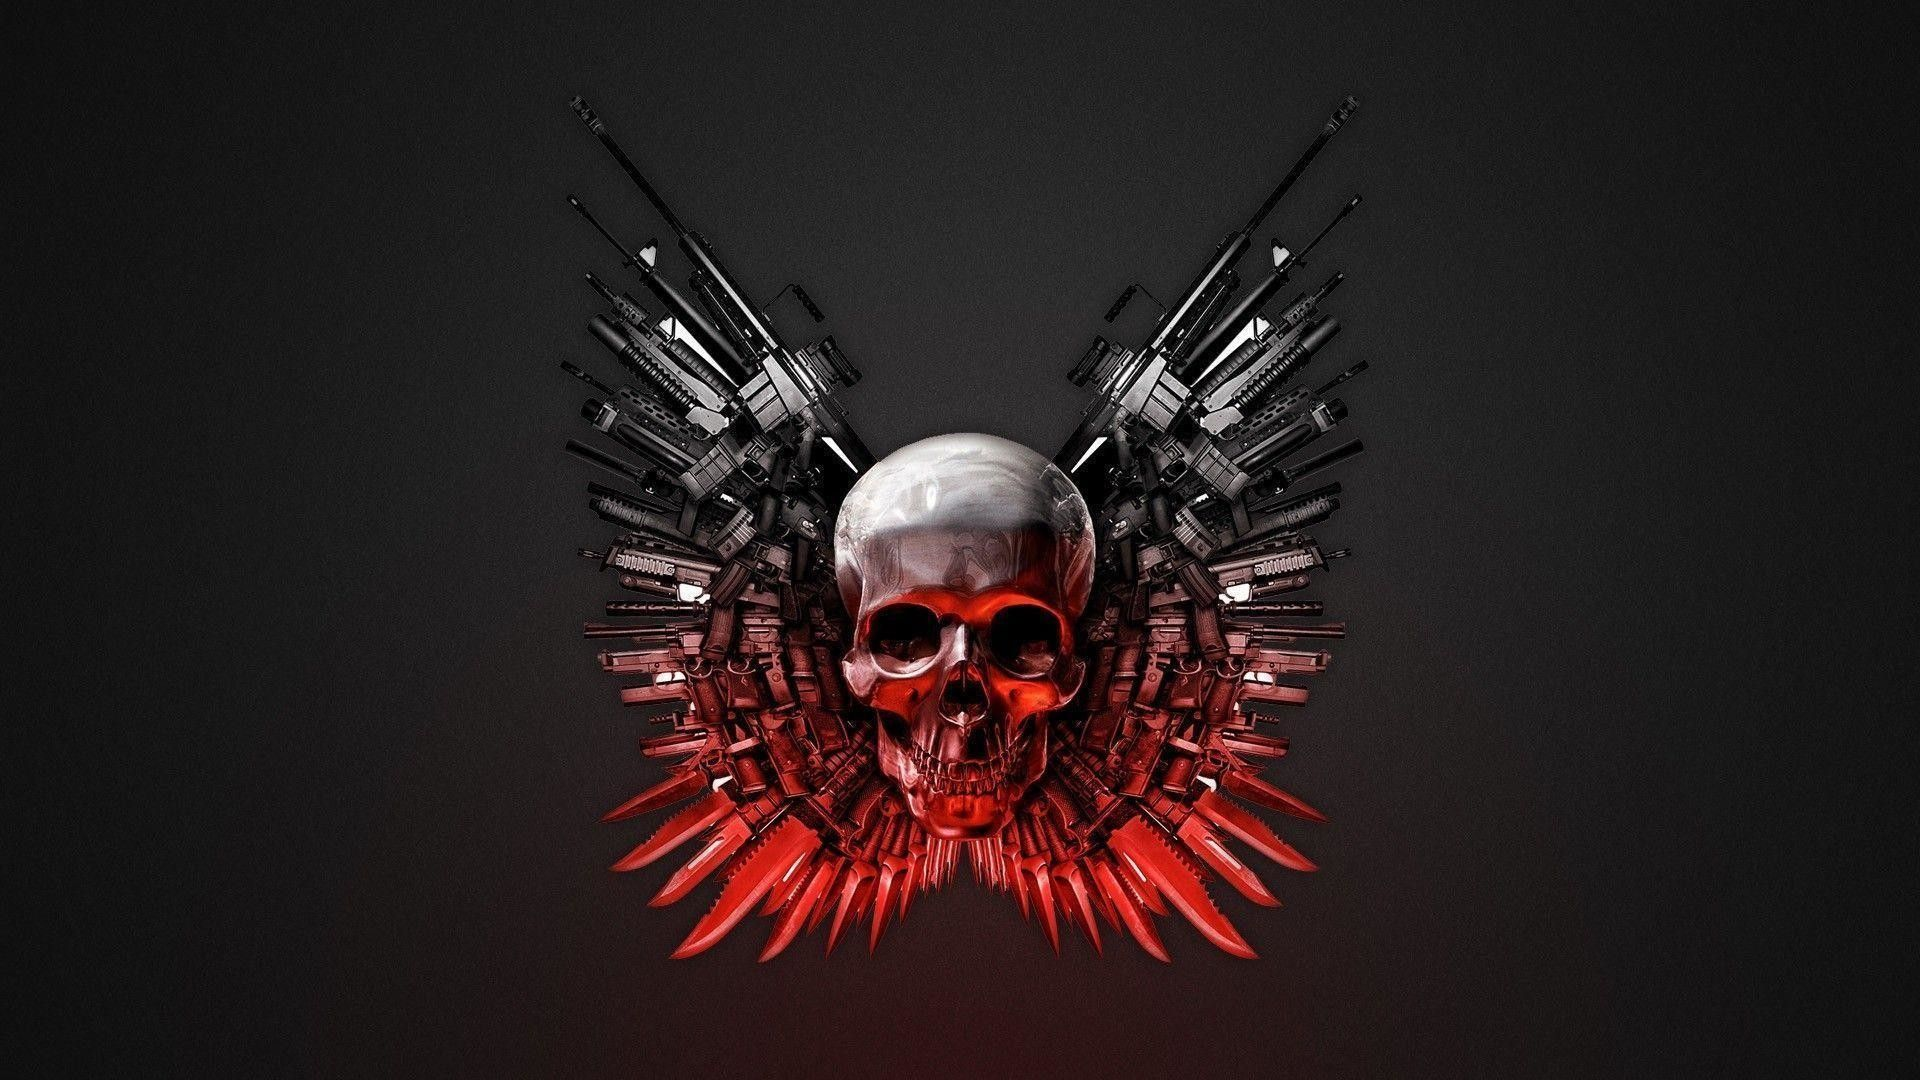 1920x1080 73+ Abstract Skull Wallpapers on WallpaperPlay